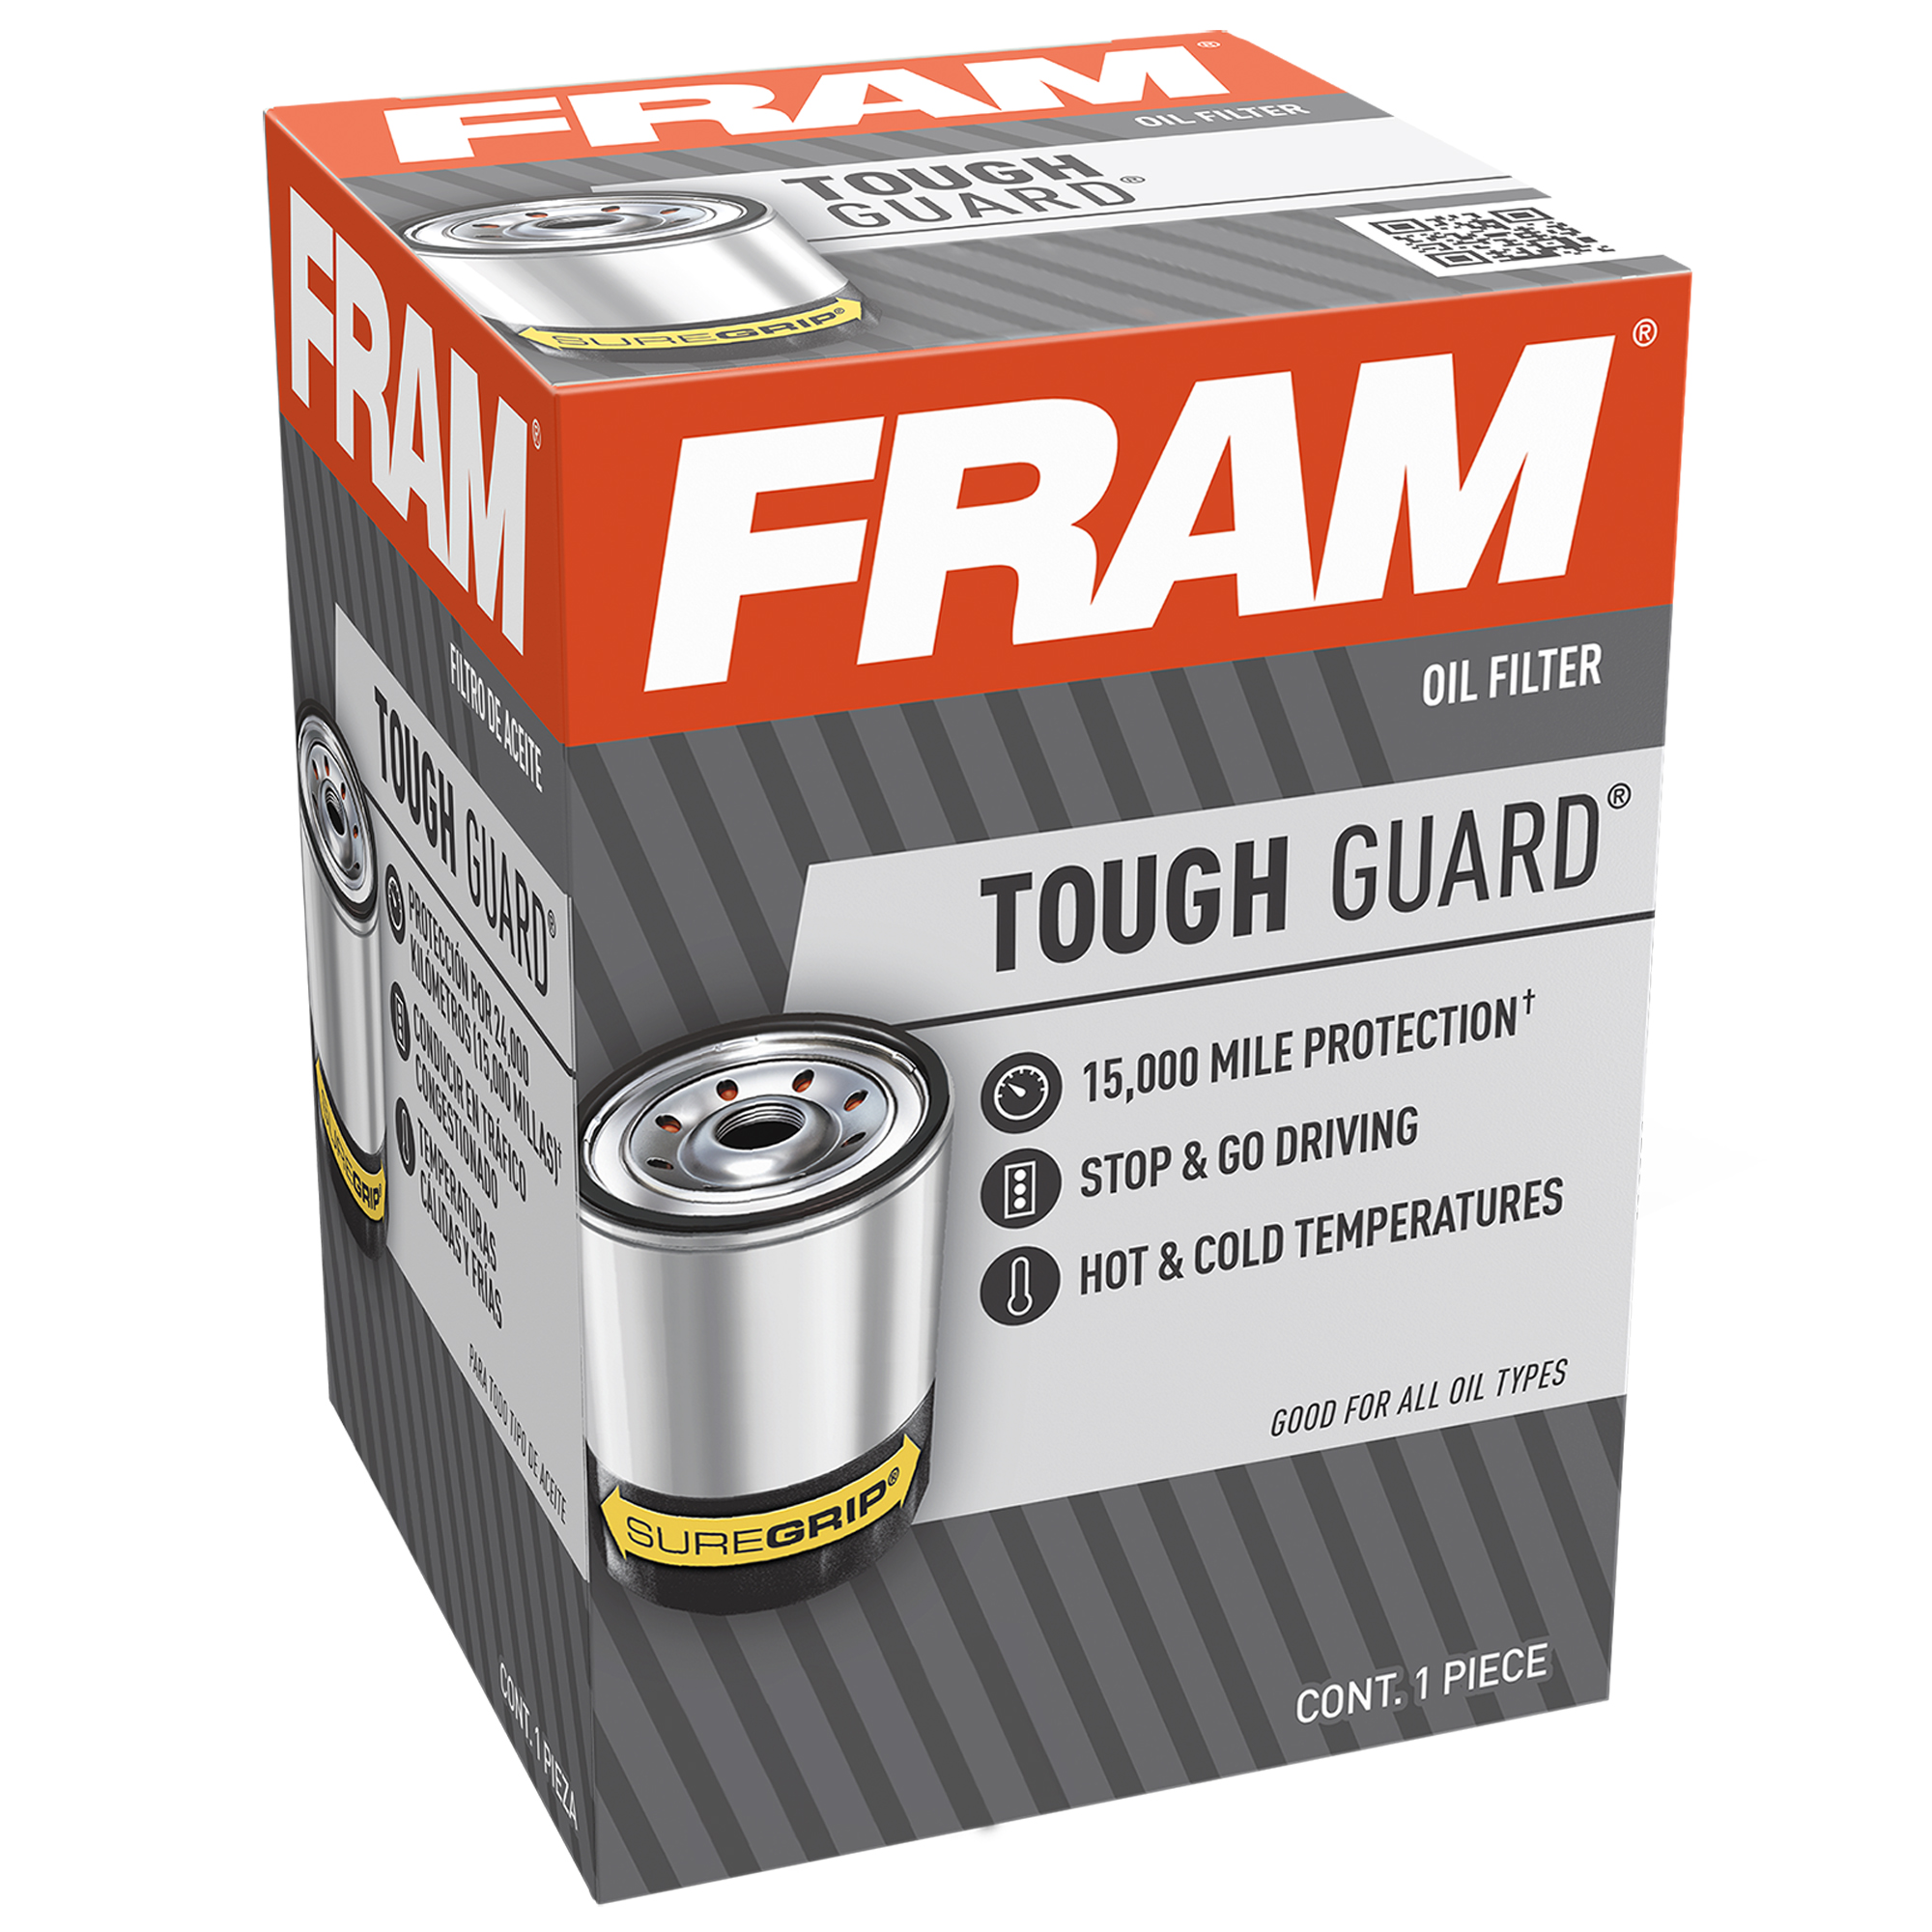 FRAM Tough Guard Filter TG7317, 15K Mile Change Interval Oil Filter